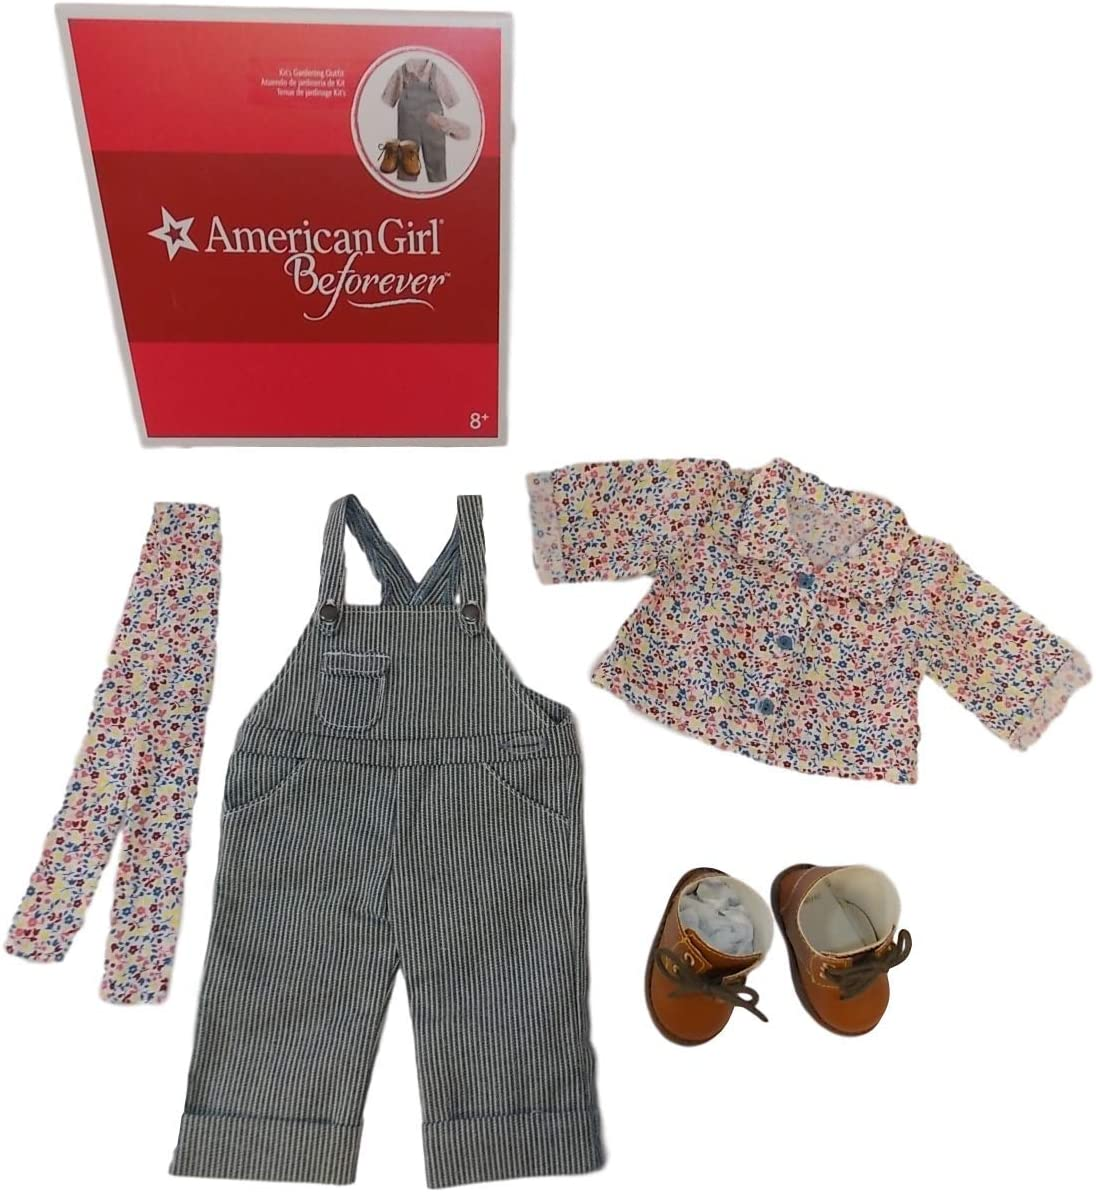 Doll Not Included /… American Girl Kits Gardening Outfit for 18 Dolls